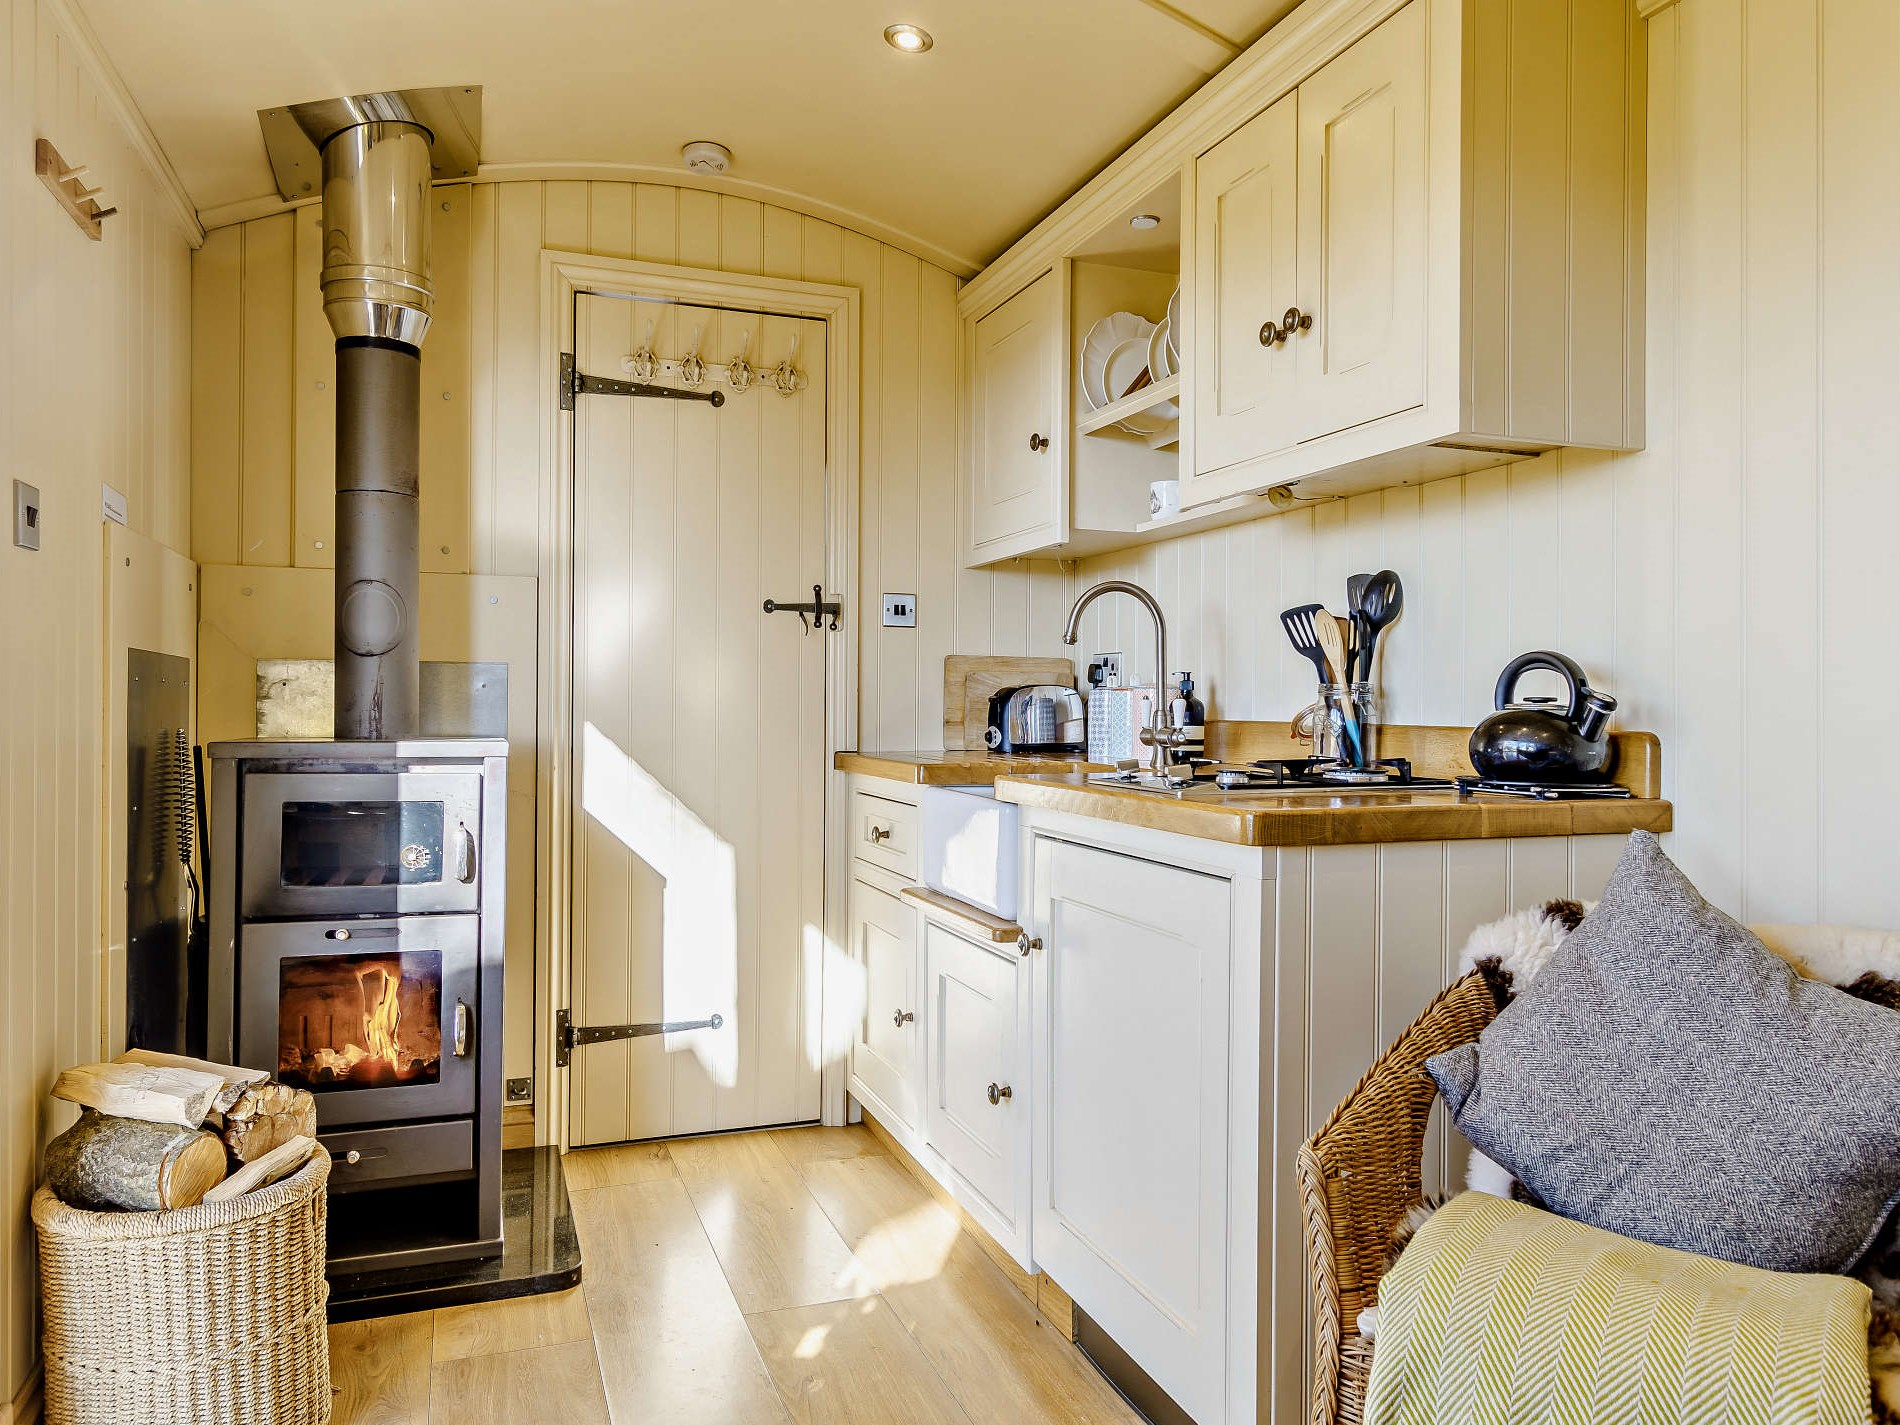 1 Bedroom Cottage in Monmouth, Pembrokeshire and the South